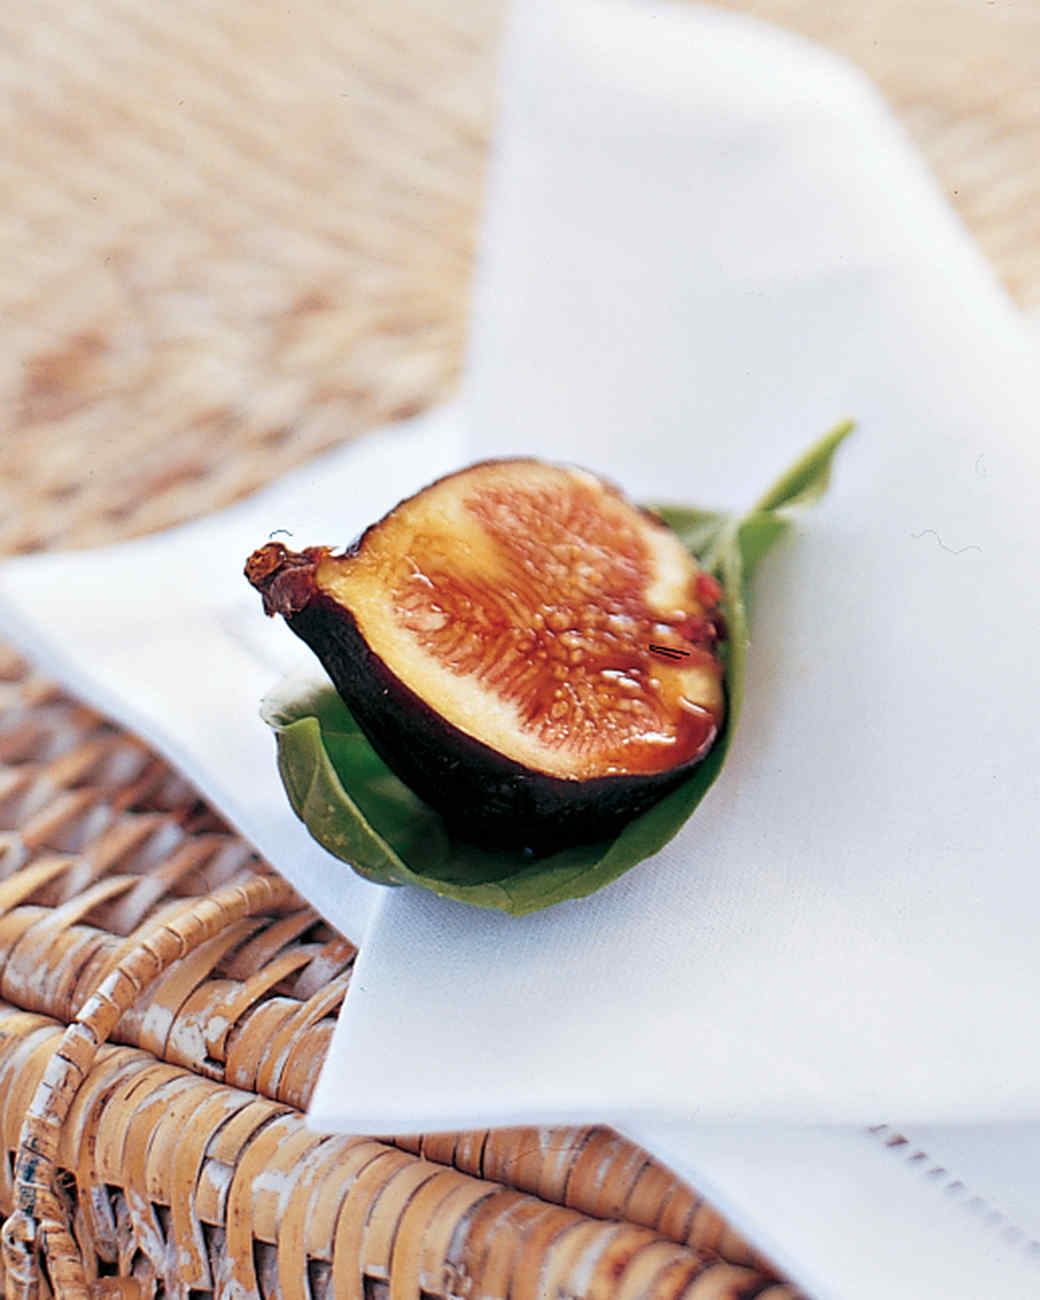 Figs Wrapped in Basil with Balsamic Vinegar